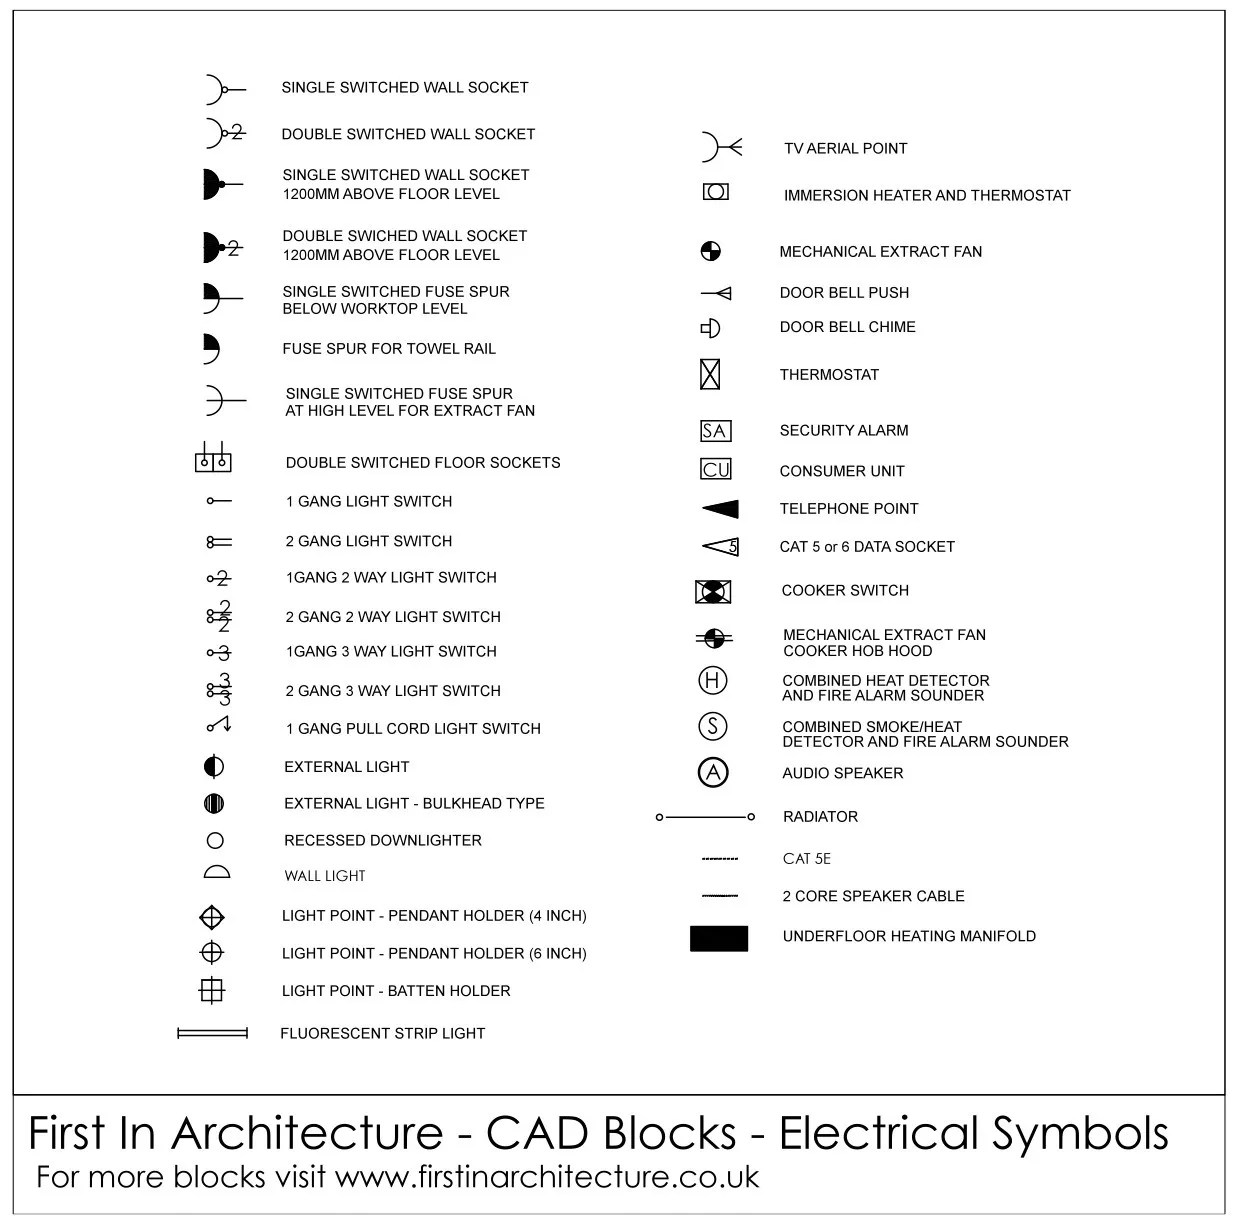 free cad blocks electrical symbols Electrical Schematic Symbols Electrical Schematic Symbols